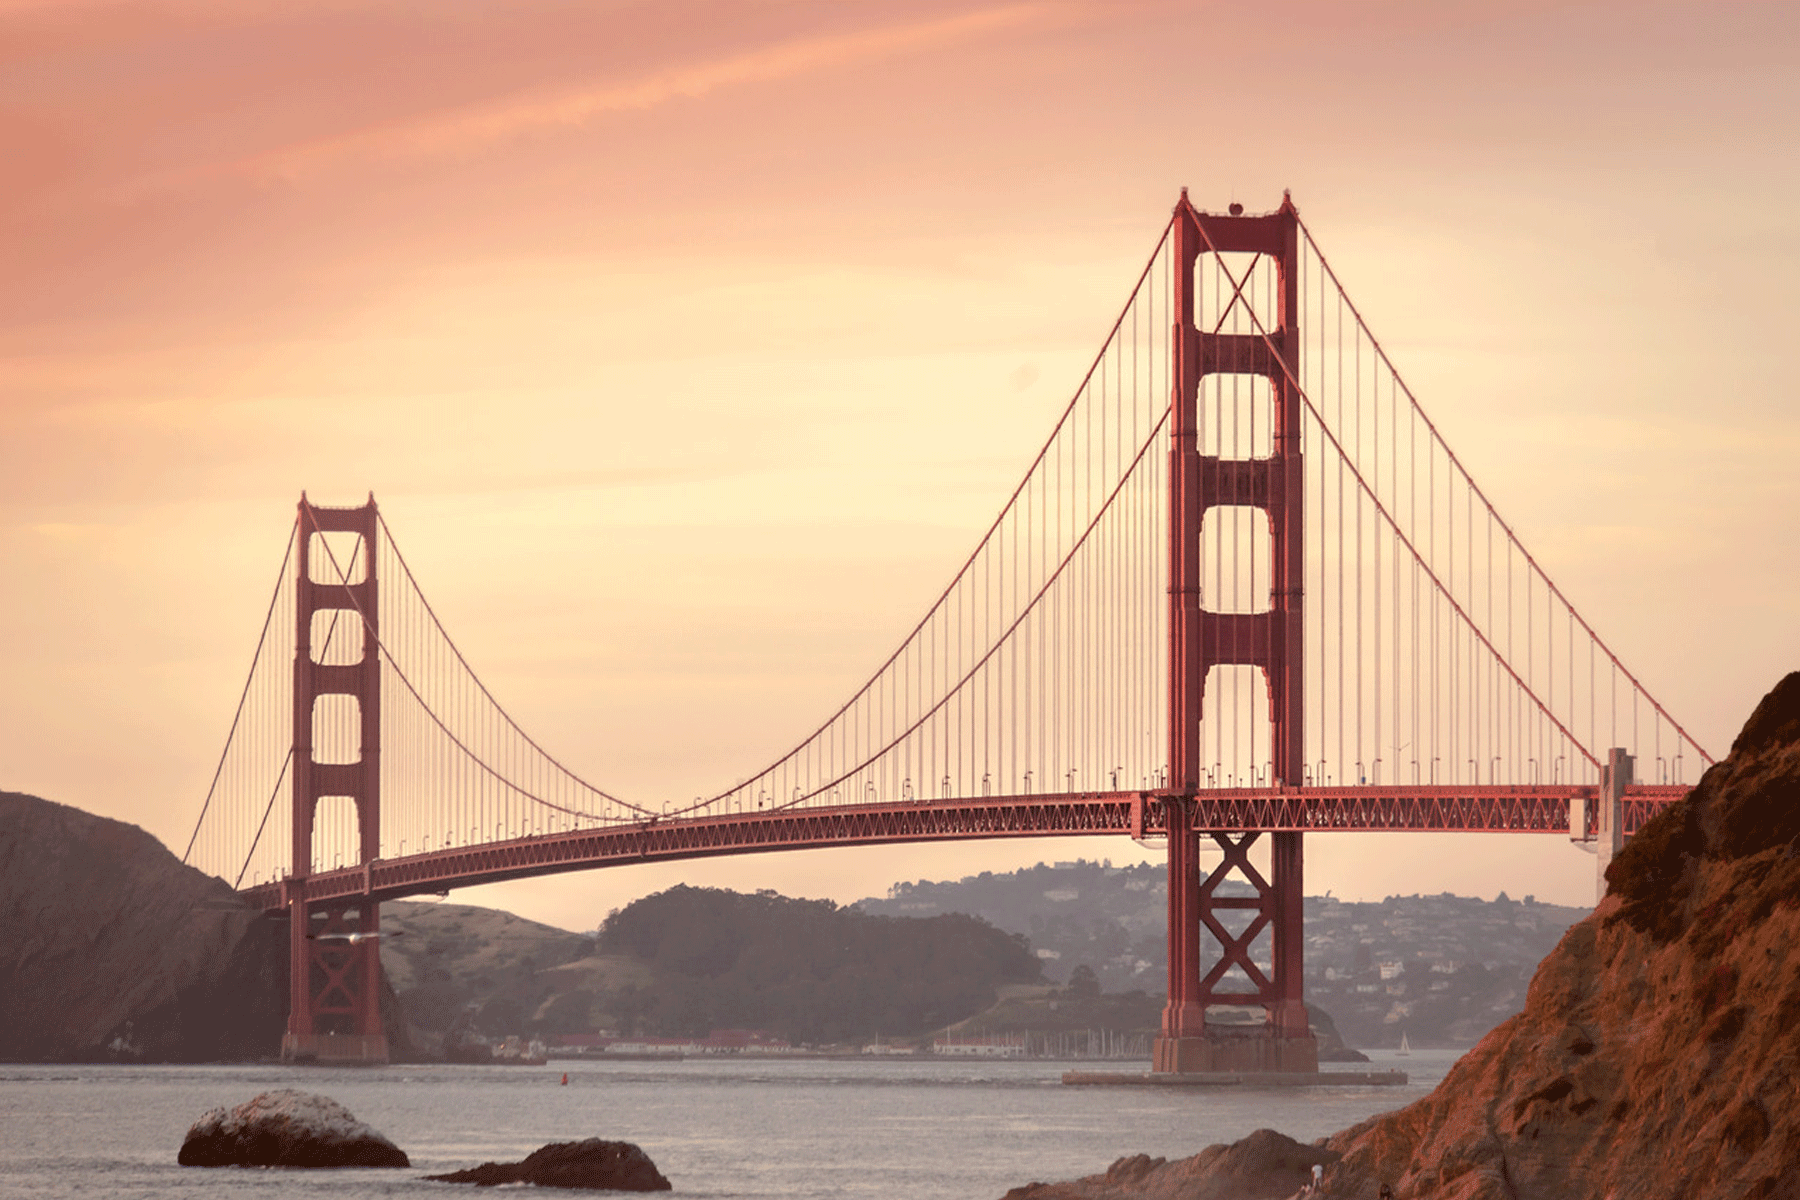 San Francisco Recruiter's Predictive Analytics Target Tech Talent